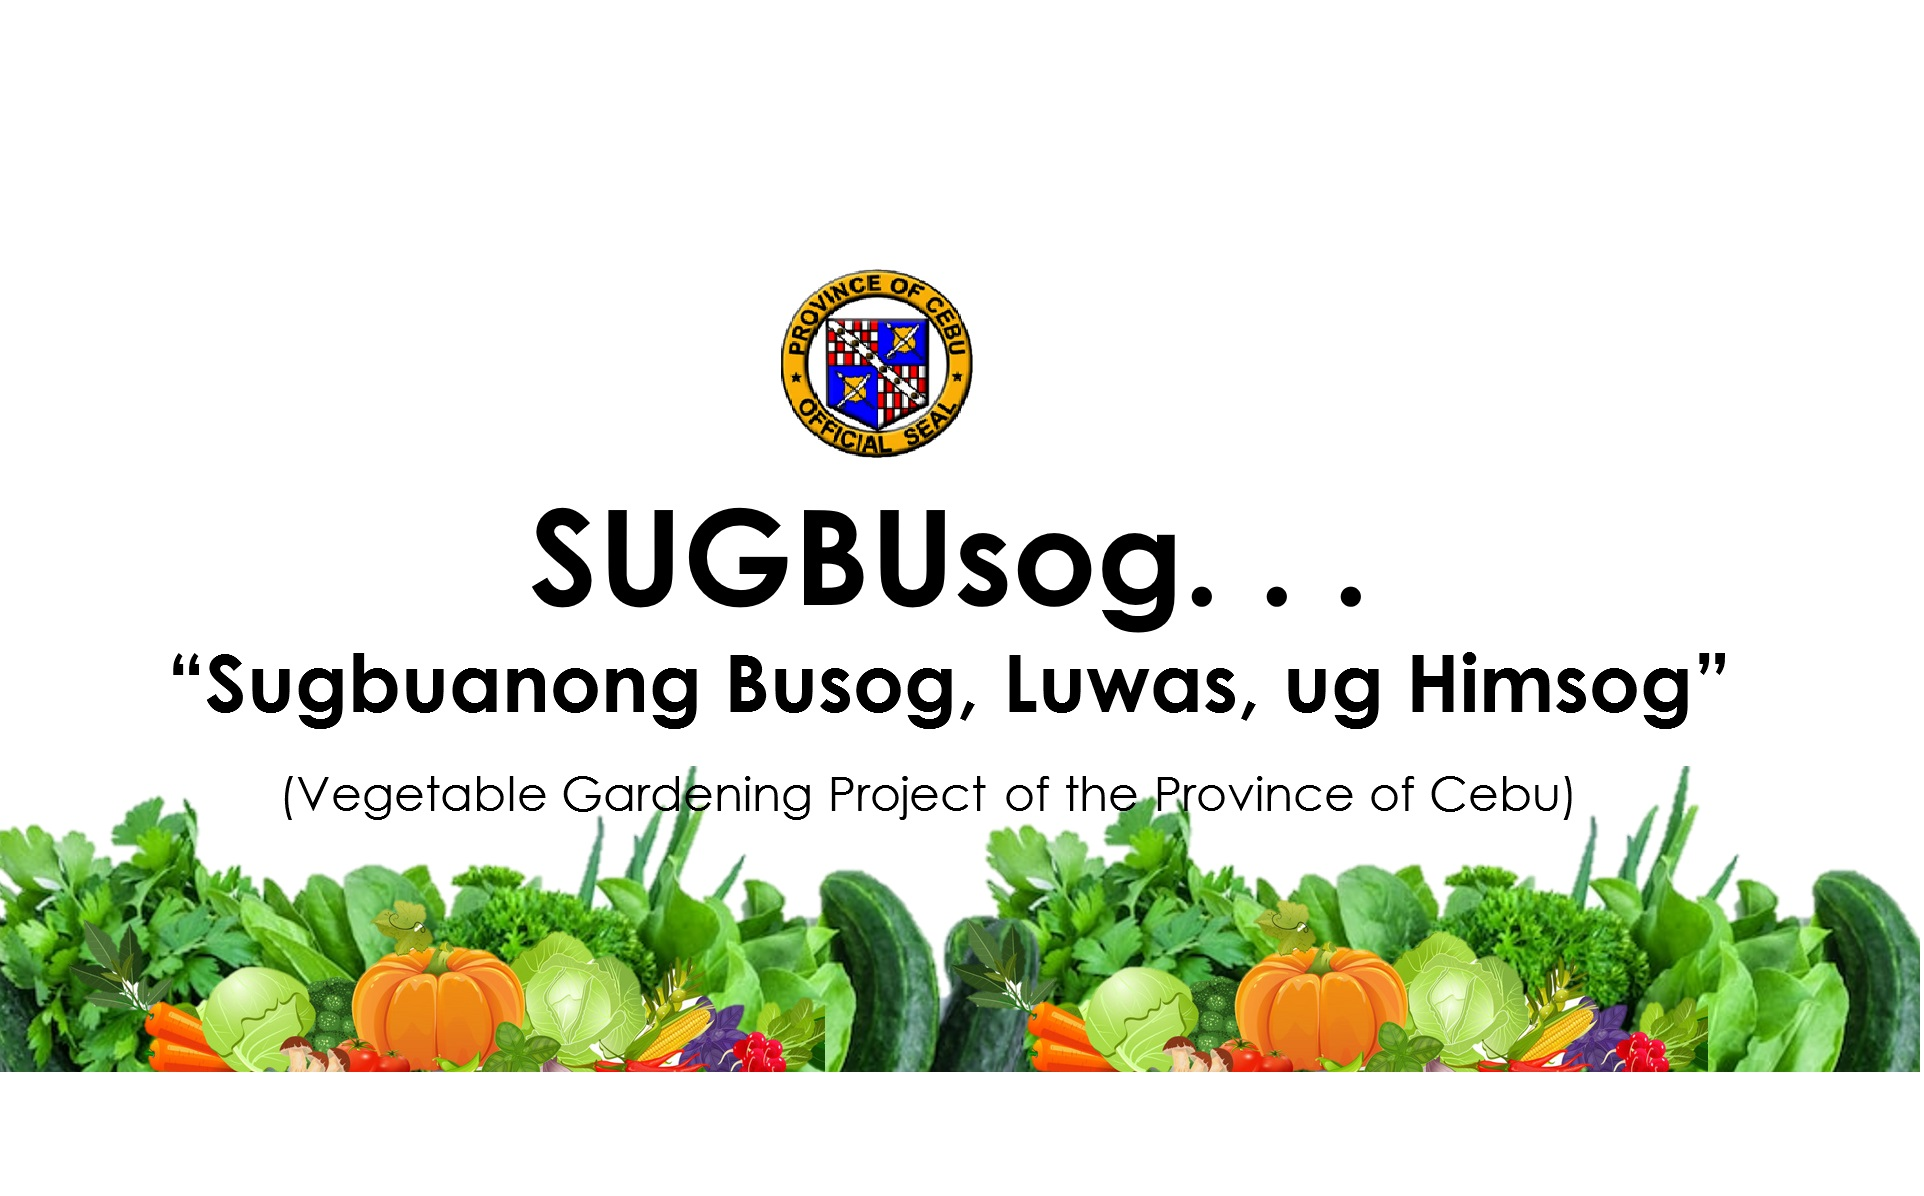 Awarding of SUGBUsog Round 2 set on May